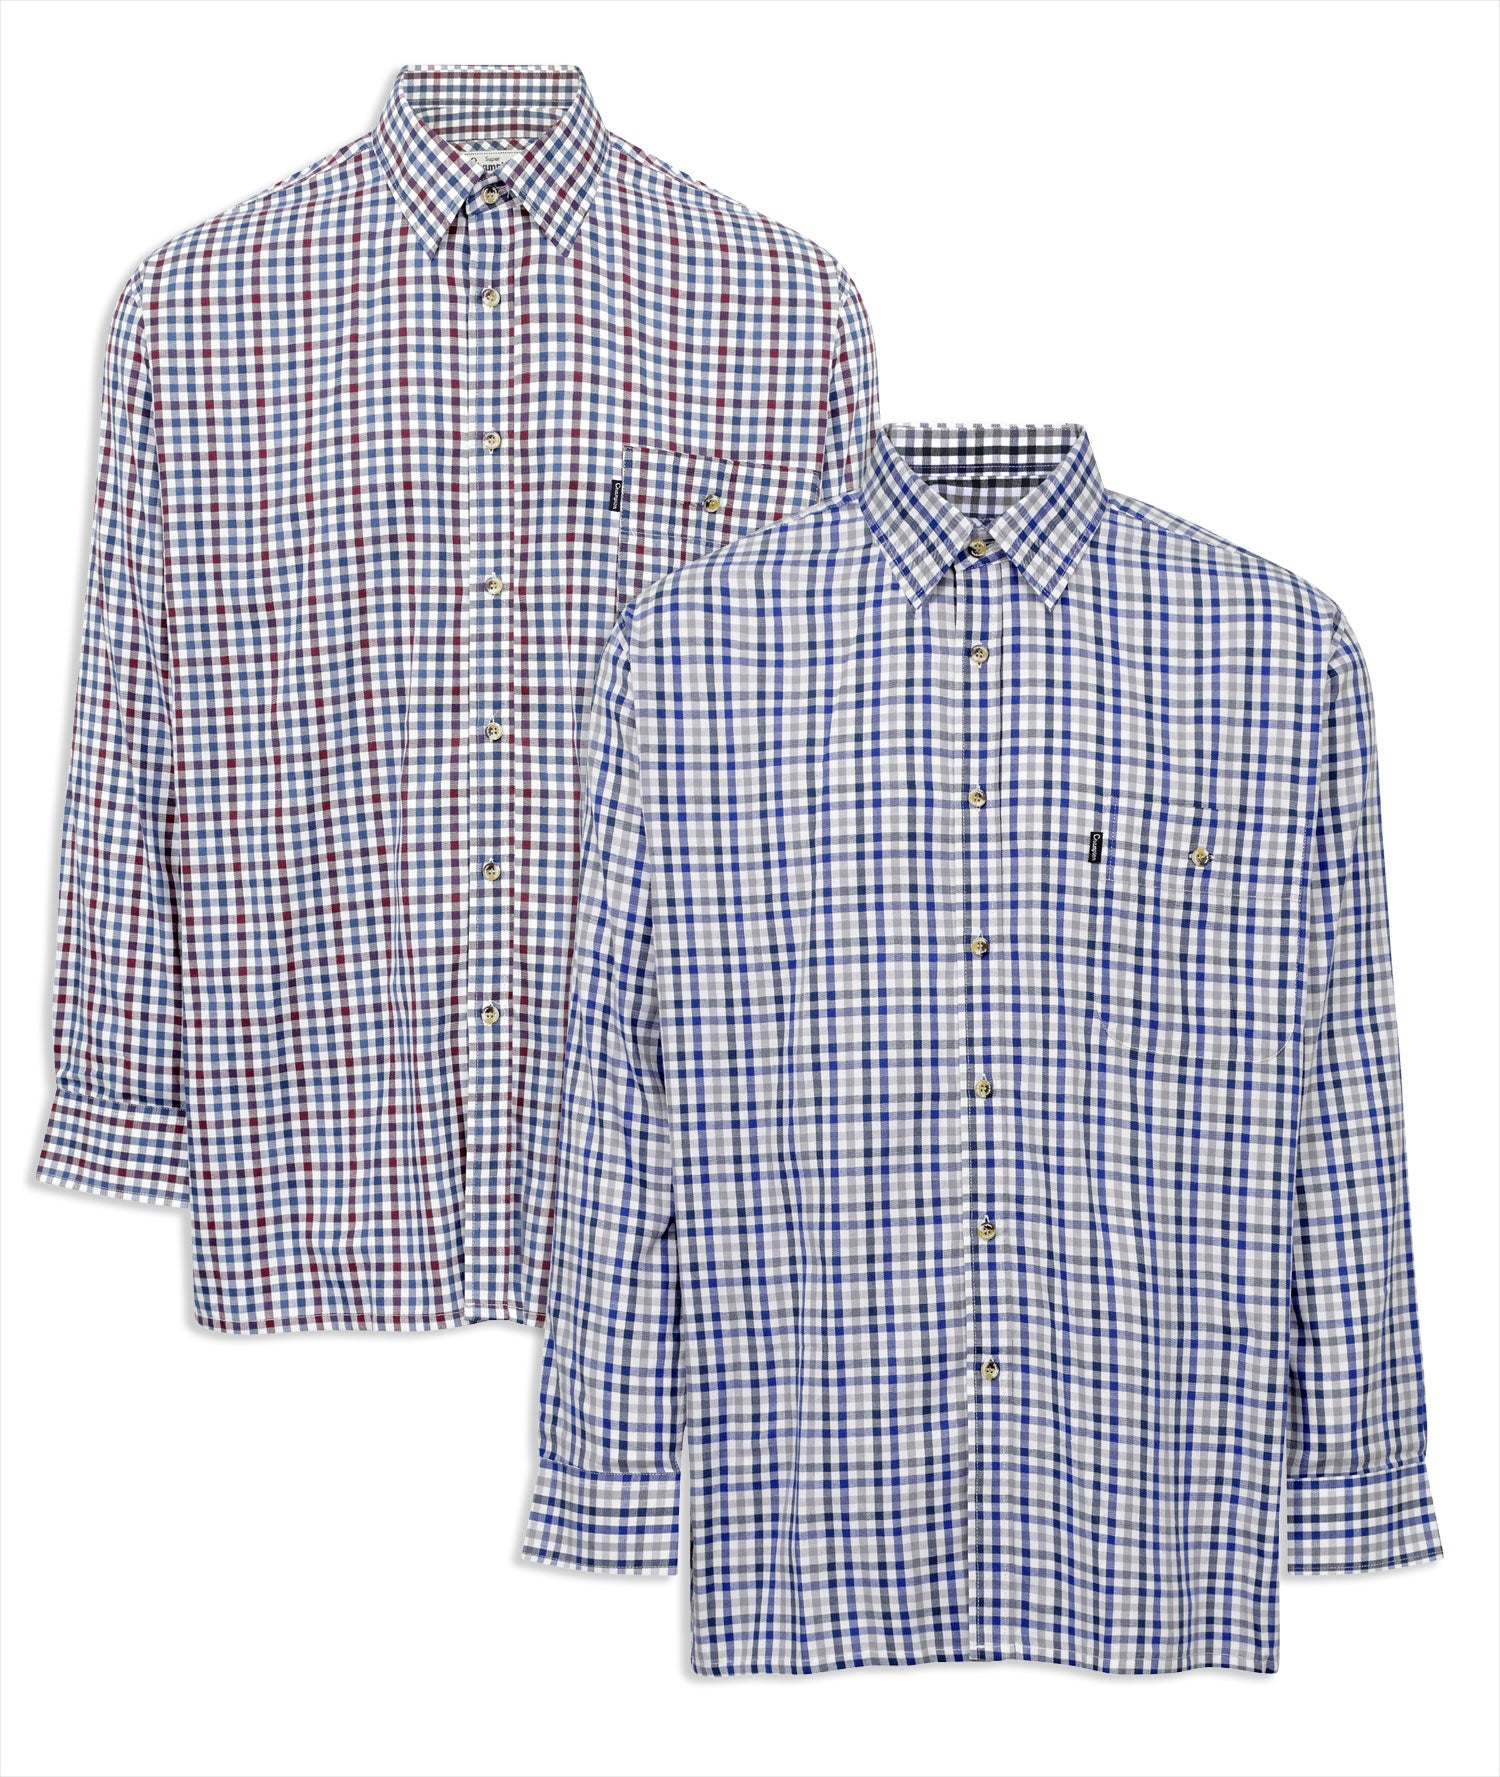 b81770fb Champion Buxton Gingham Cotton Rich Shirt blue white and red check